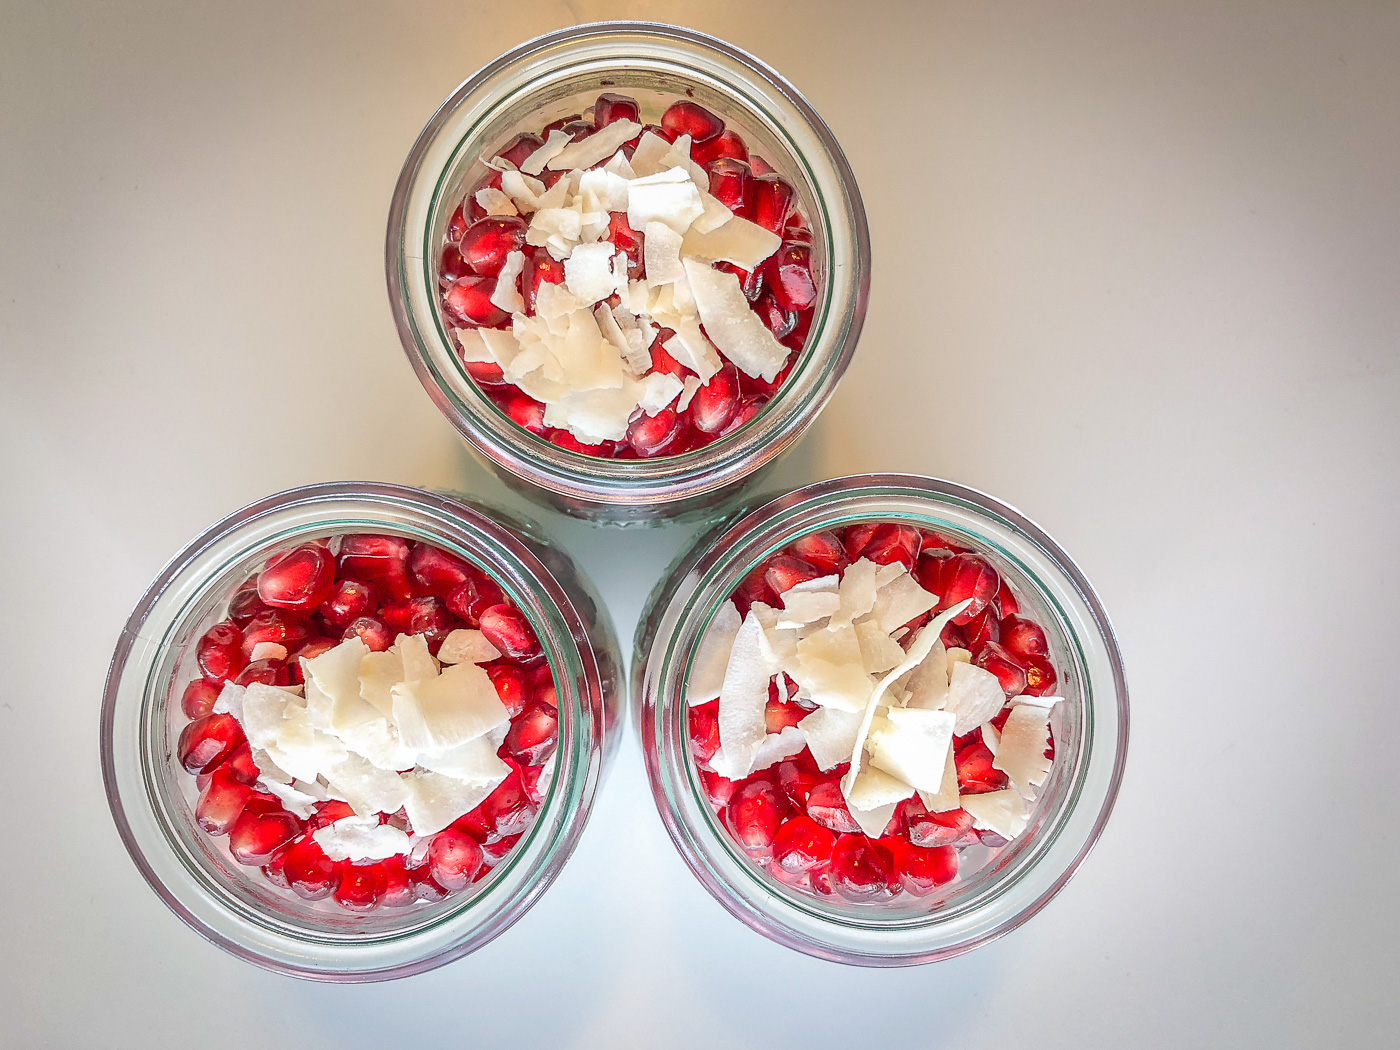 Three Weck jars filled with chia pudding and pomegranate